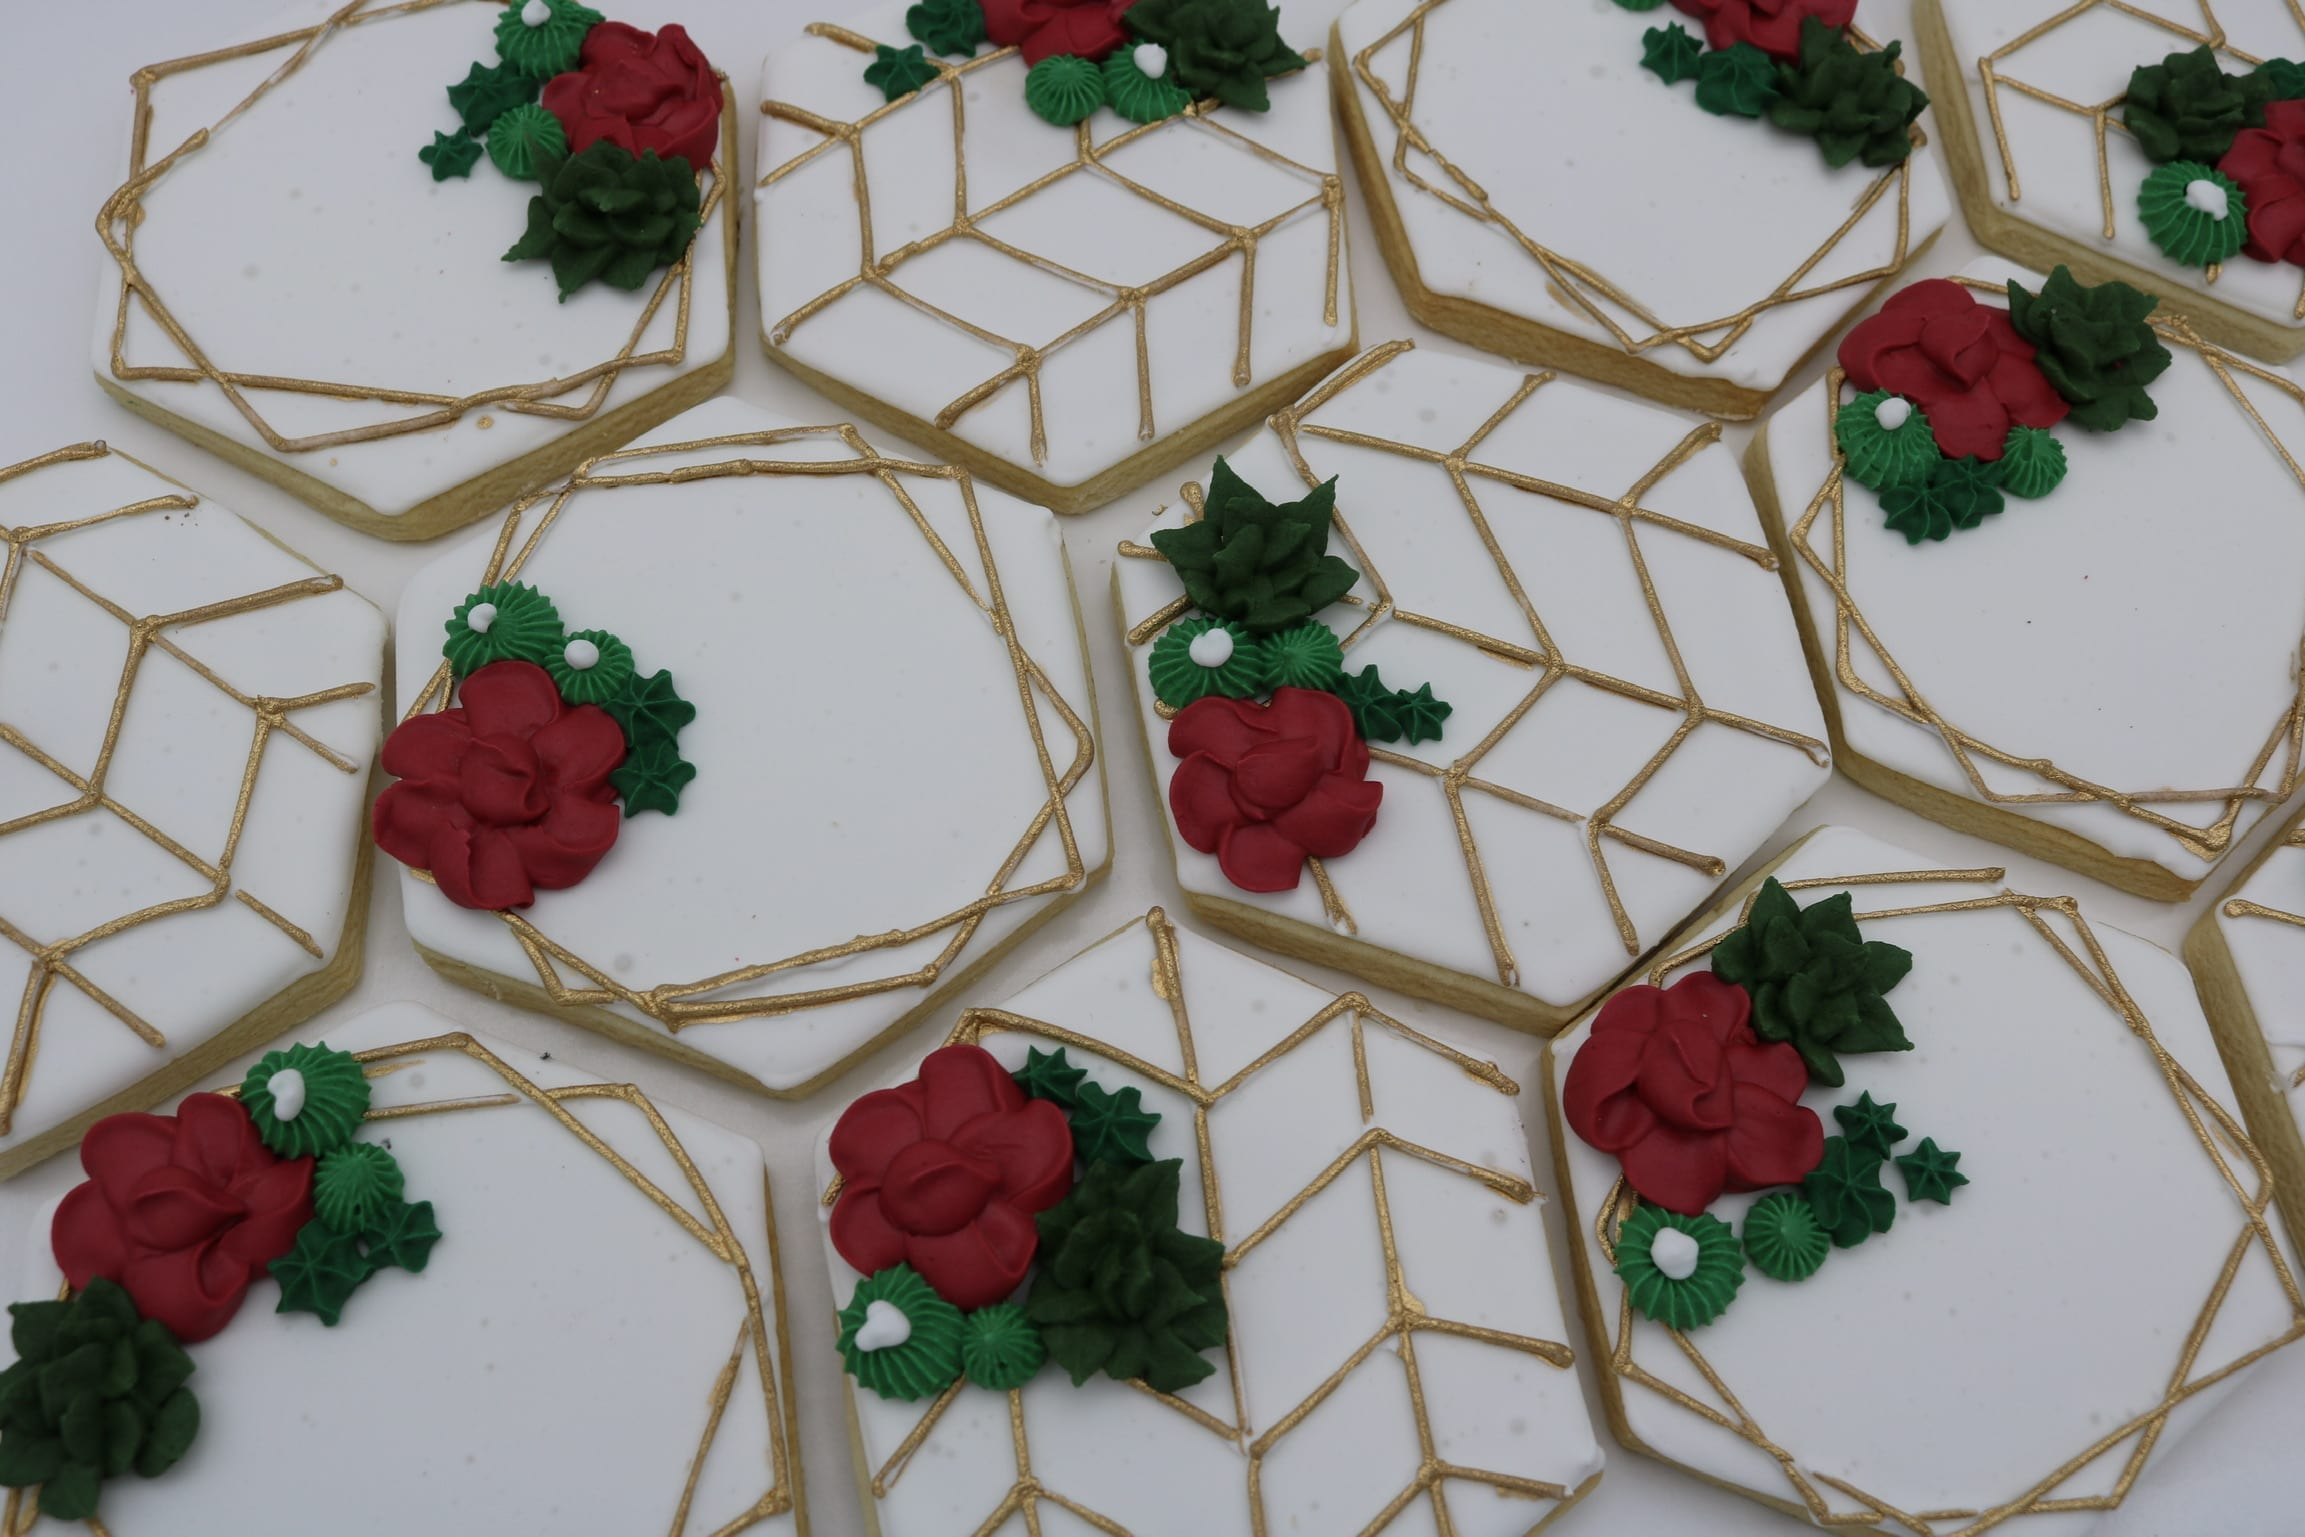 Modern Geometric Cookies with Gold Accents and Red Flowers | 3 Sweet Girls Cakery